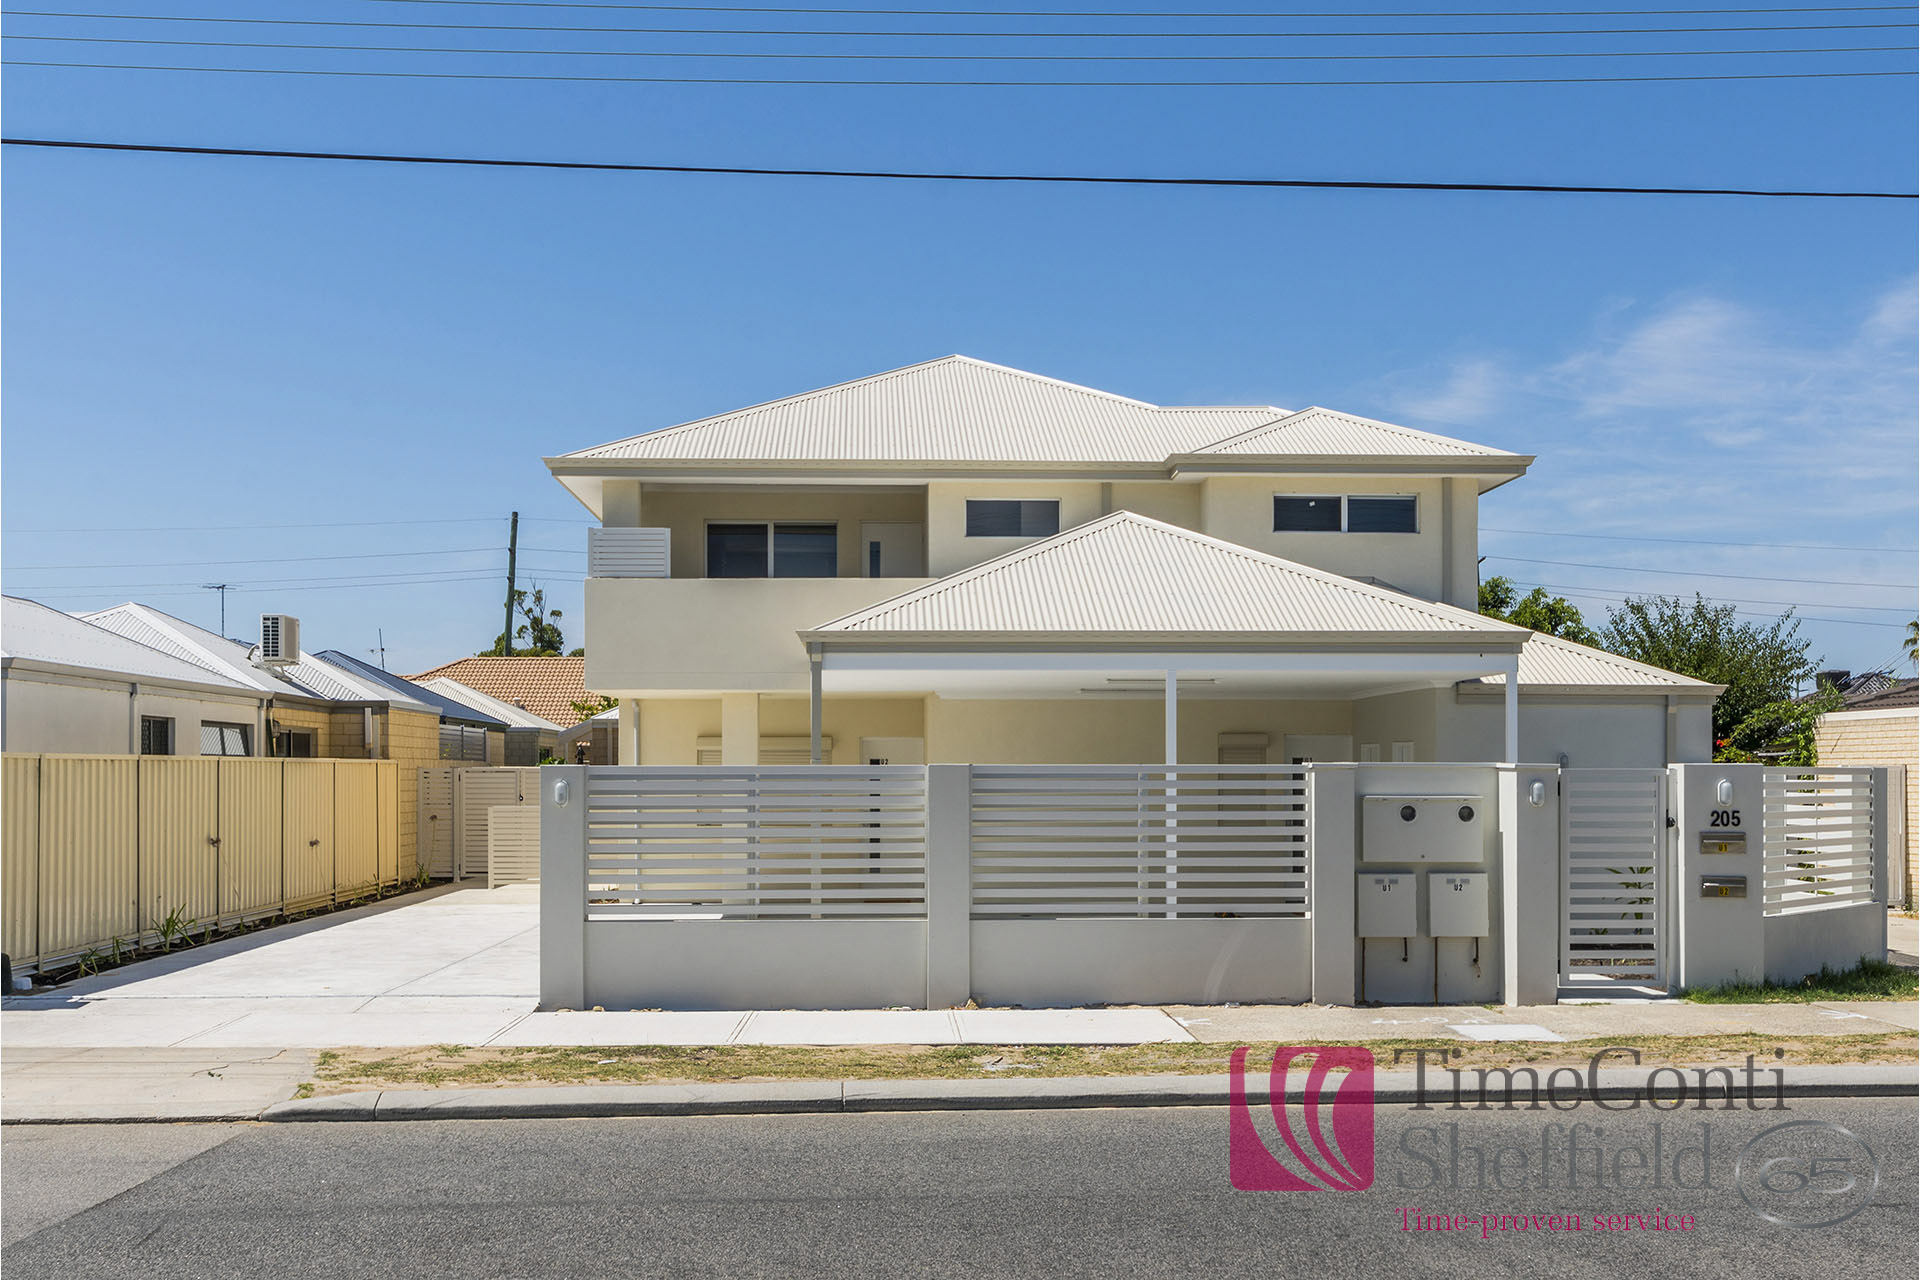 NEAR NEW, STYLISH 3 BEDROOM 2 BATHROOM AIR CONDITIONED HOME